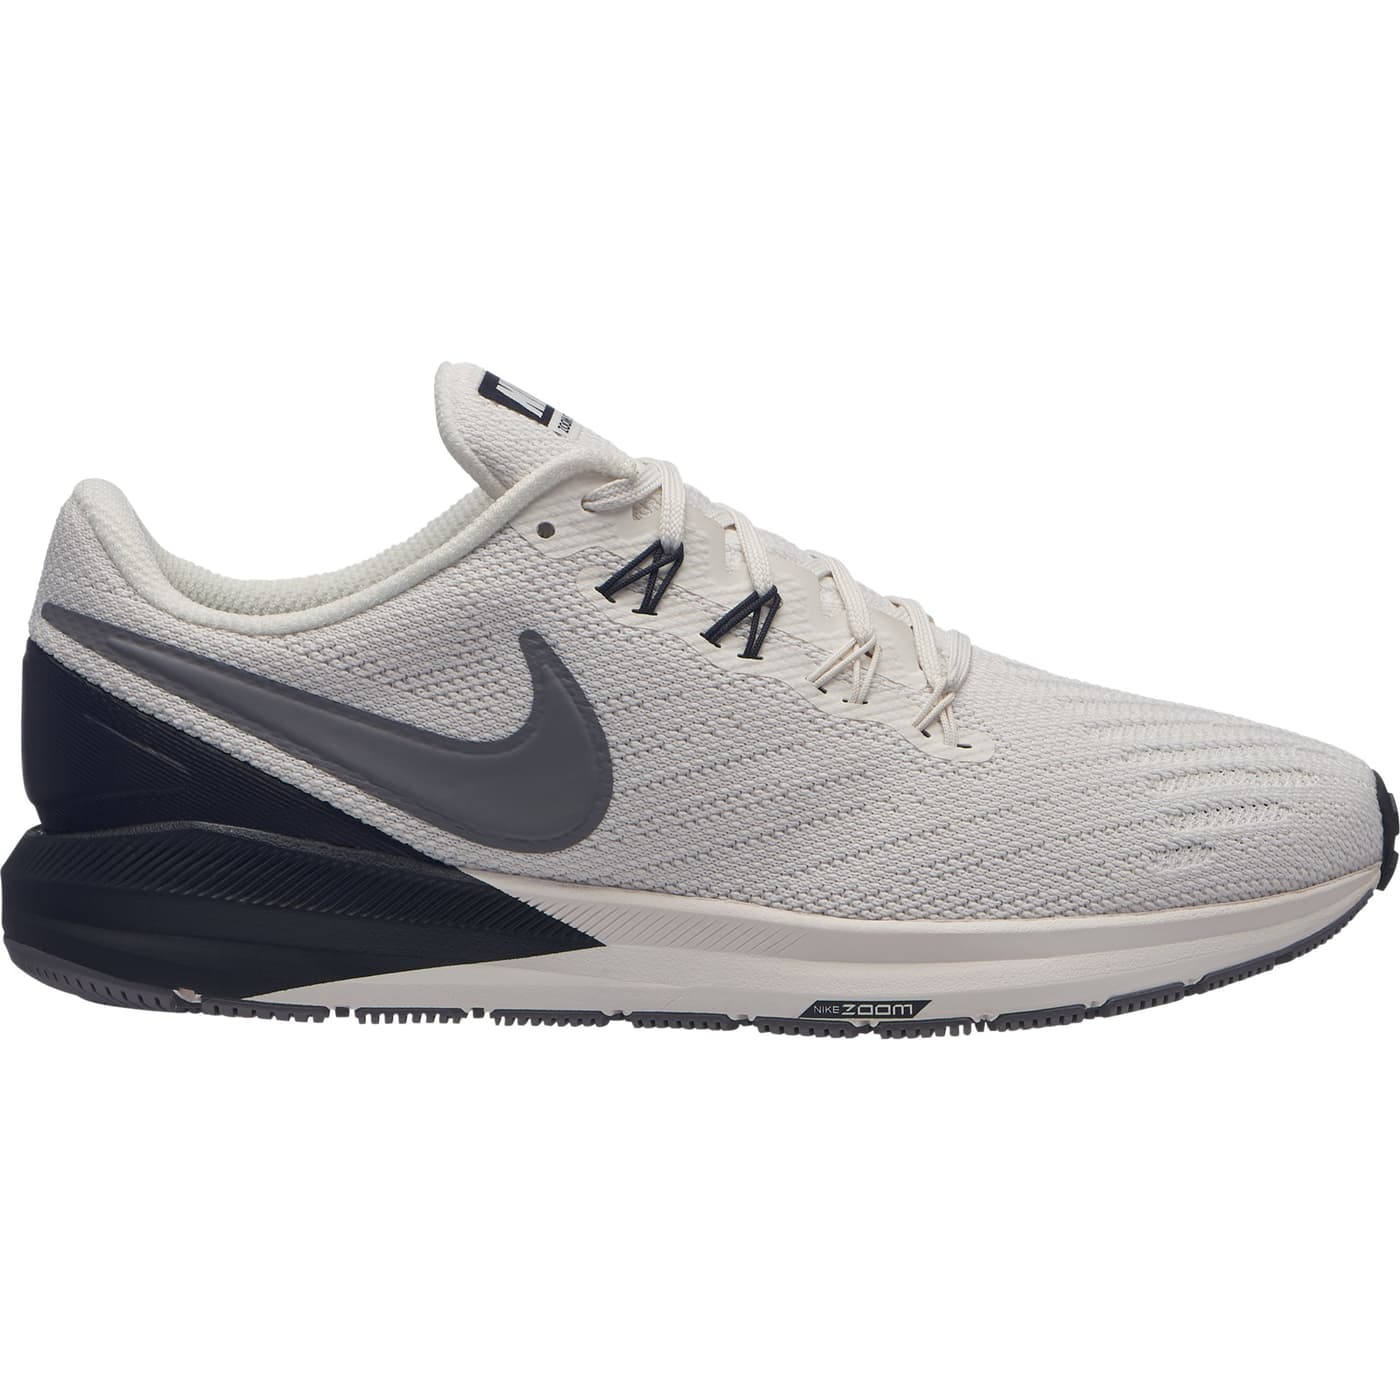 more photos 873a1 04ed6 Nike Air Zoom Structure 22 Chaussures de course pour femme ...